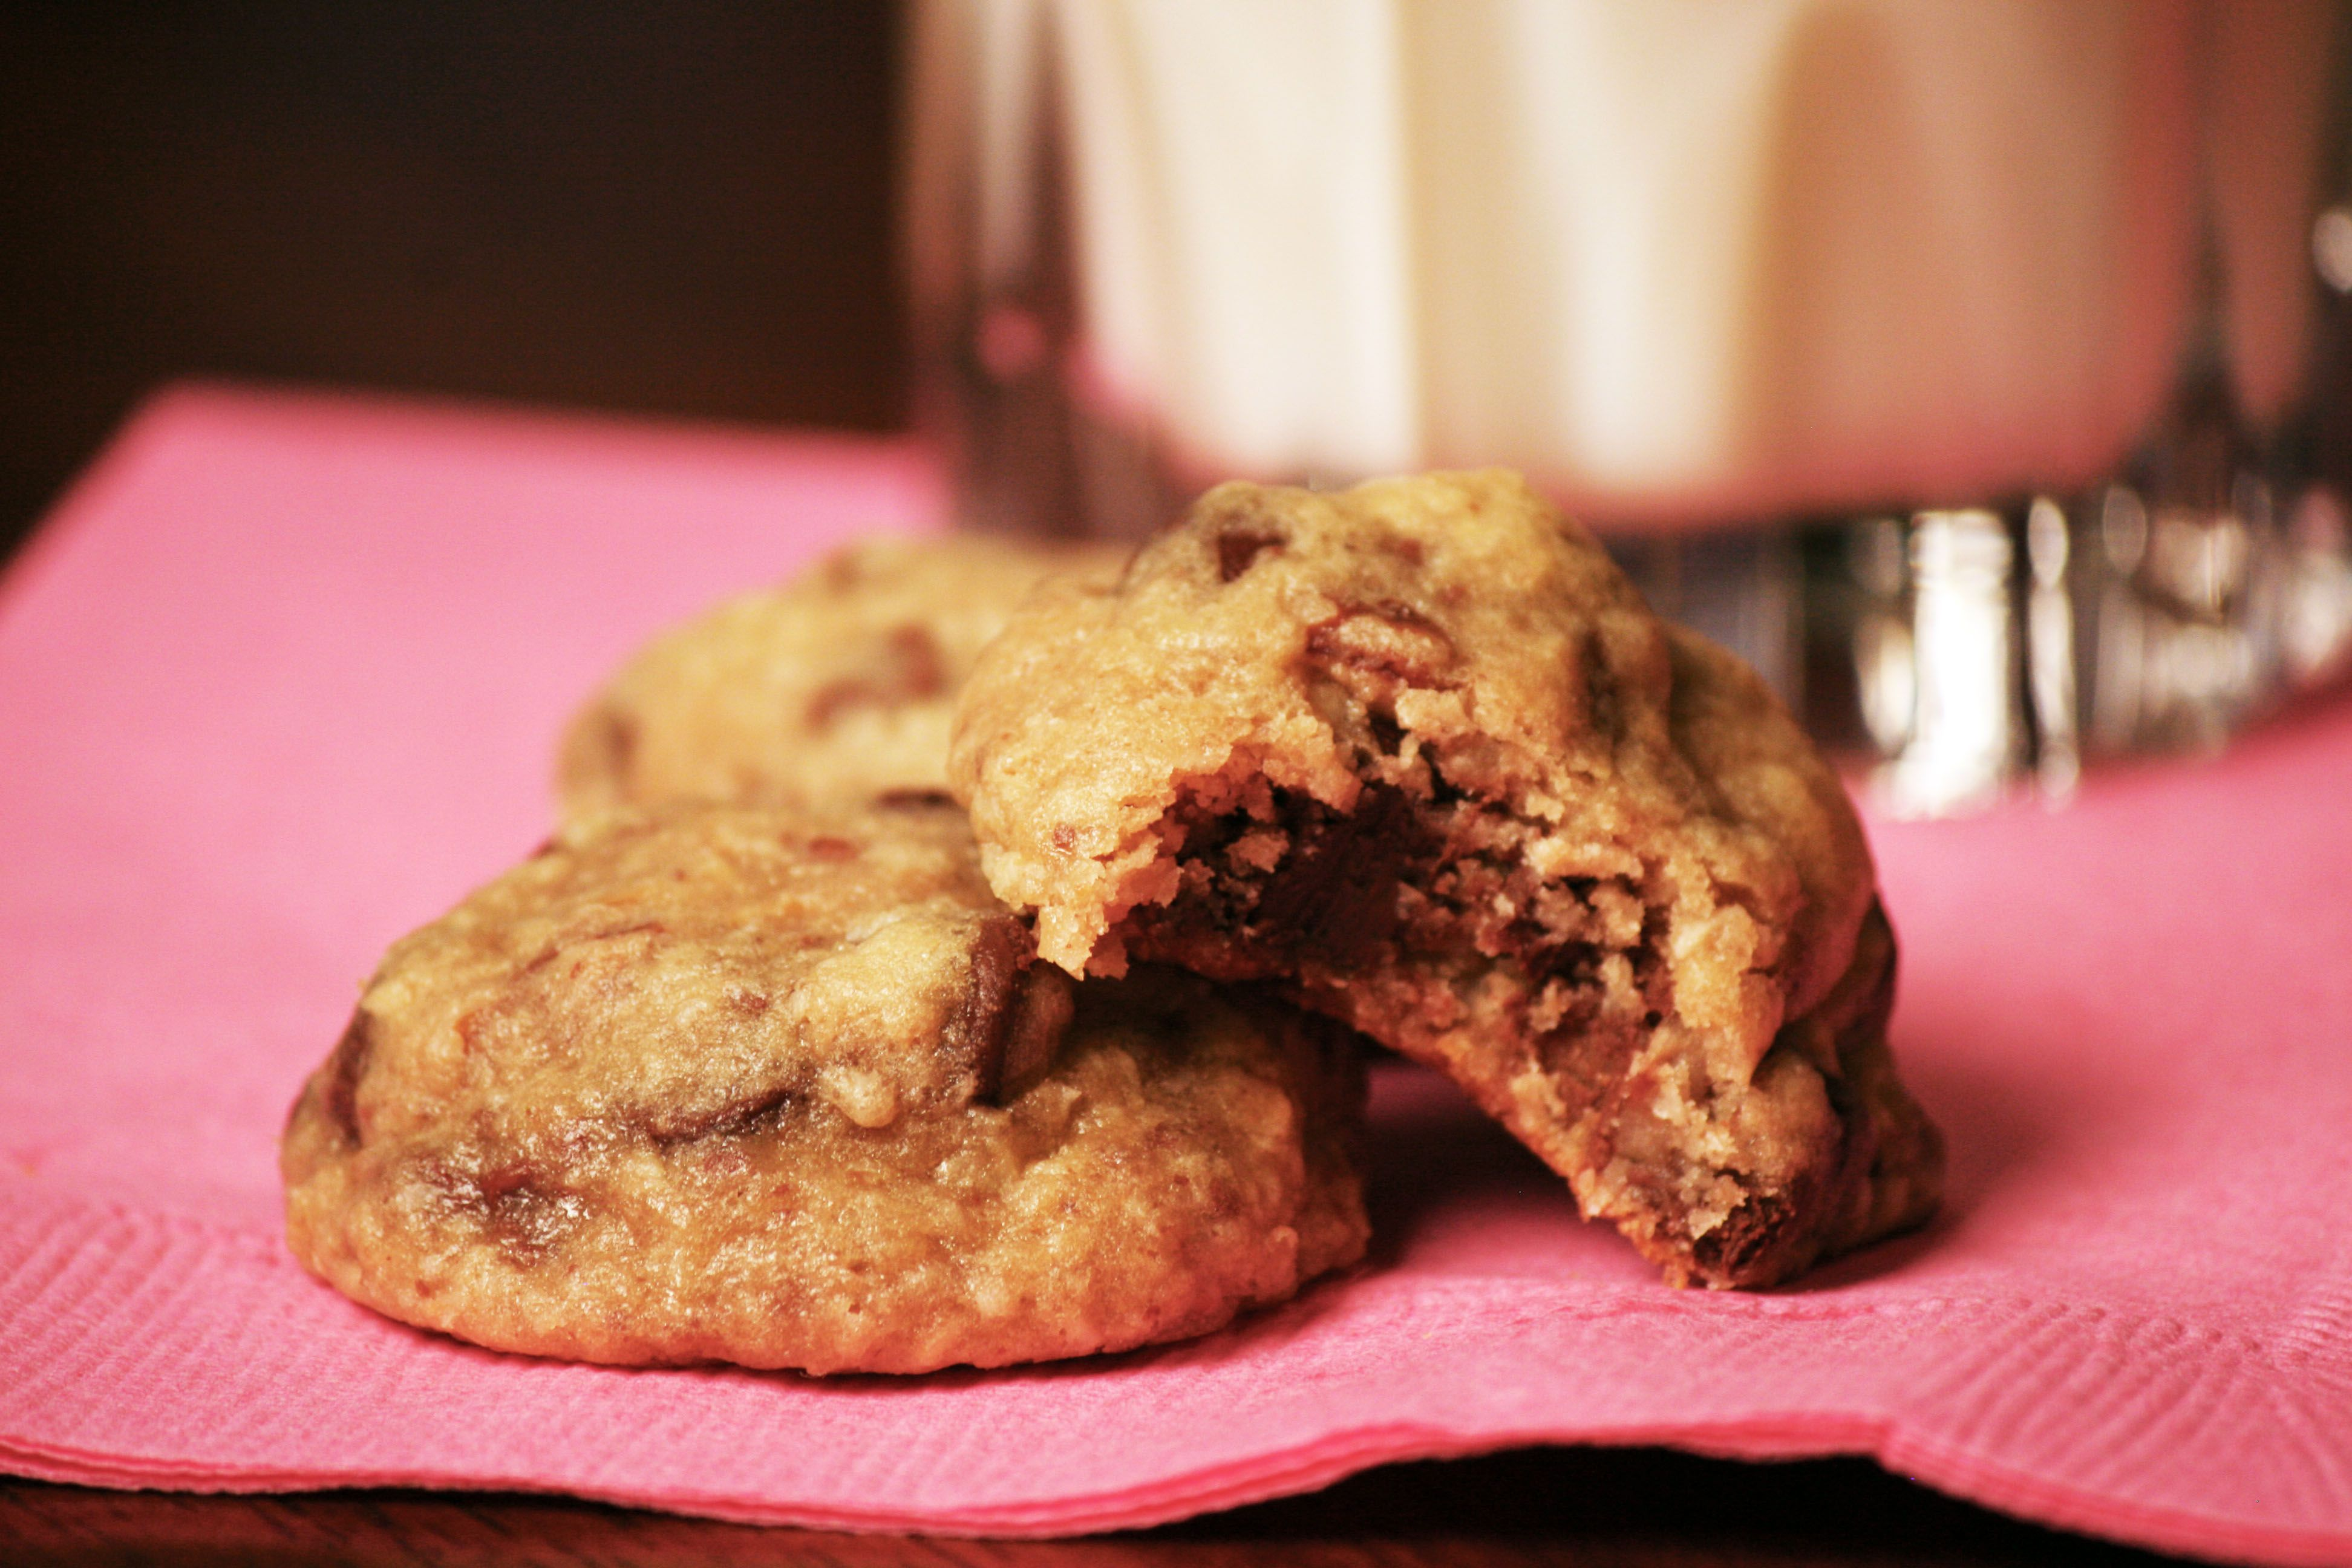 Stacey's Sweets Homemade Cookies aren't your typical flat, boring cookie.  They are super dense and rich bombs!